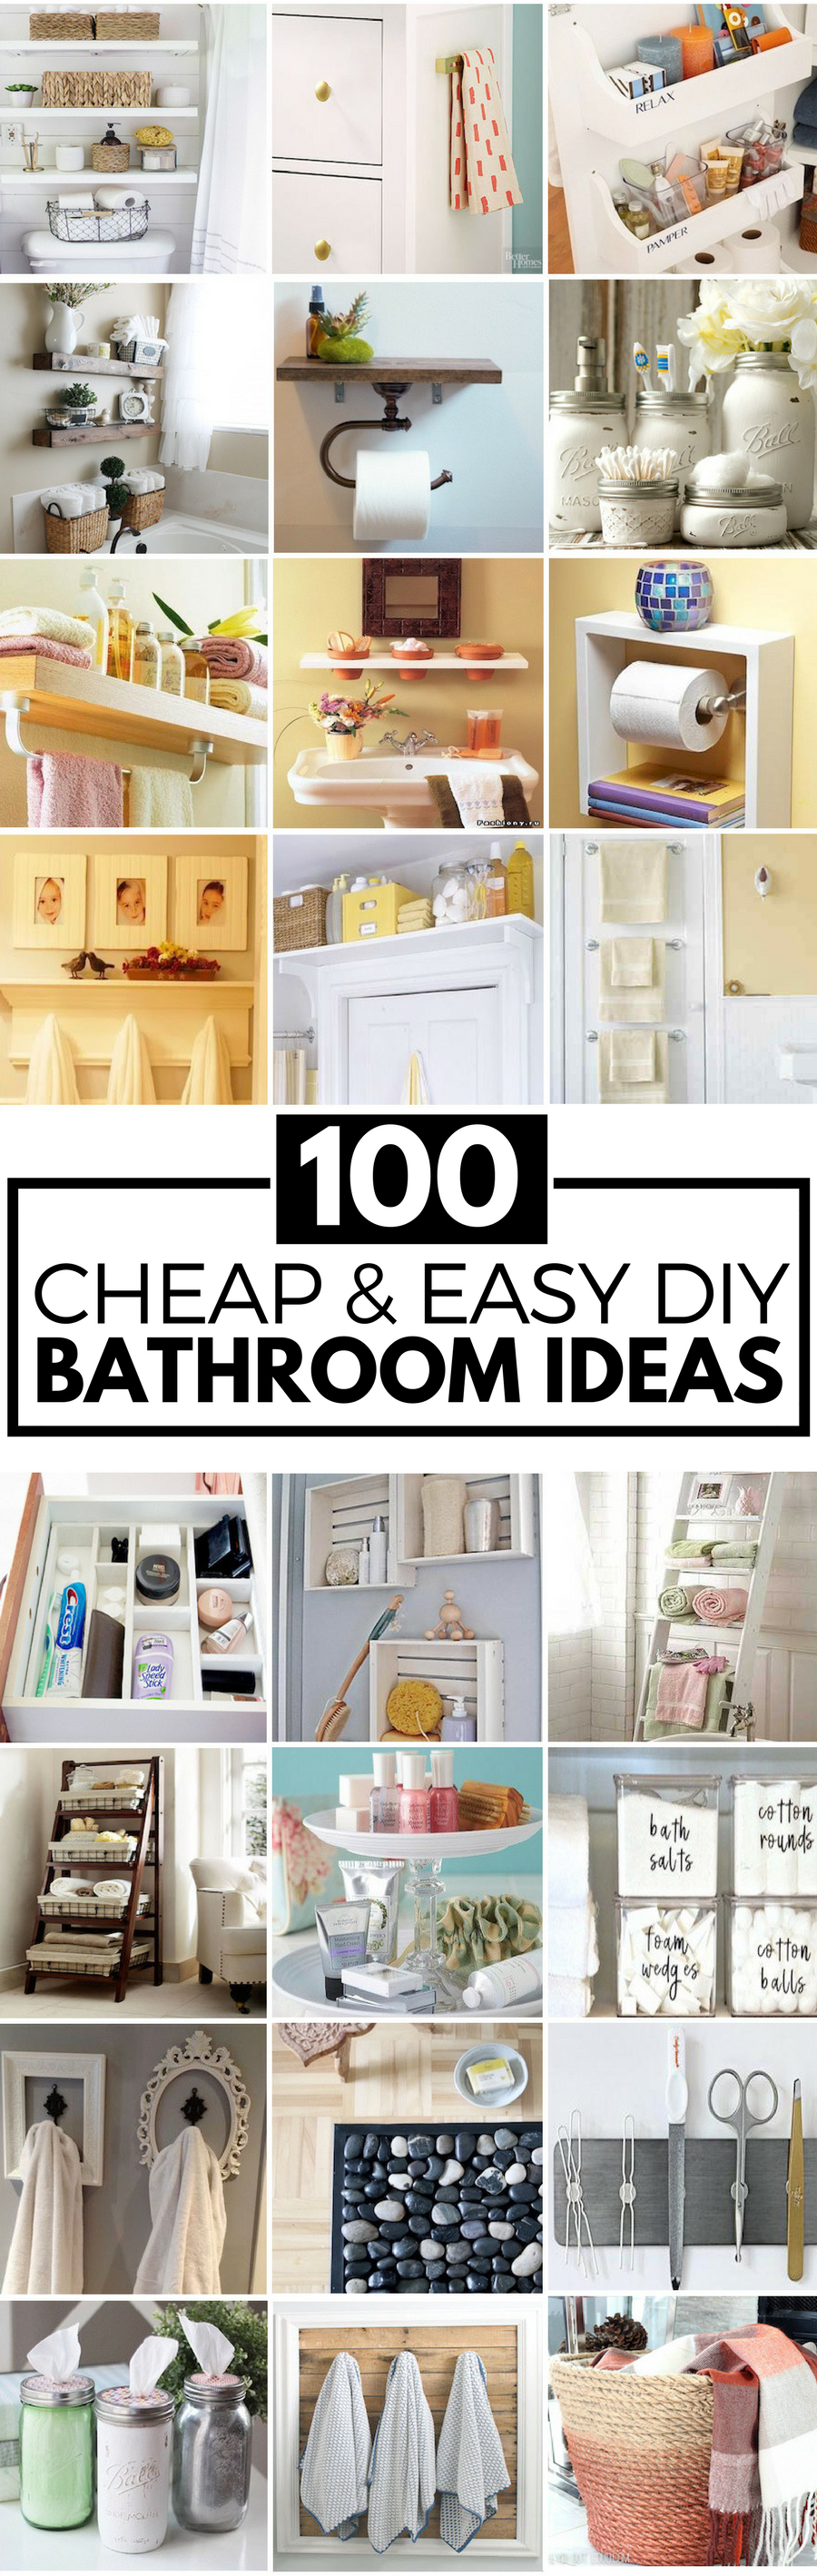 100 Cheap And Easy Diy Bathroom Ideas Diy Bathroom Ideas